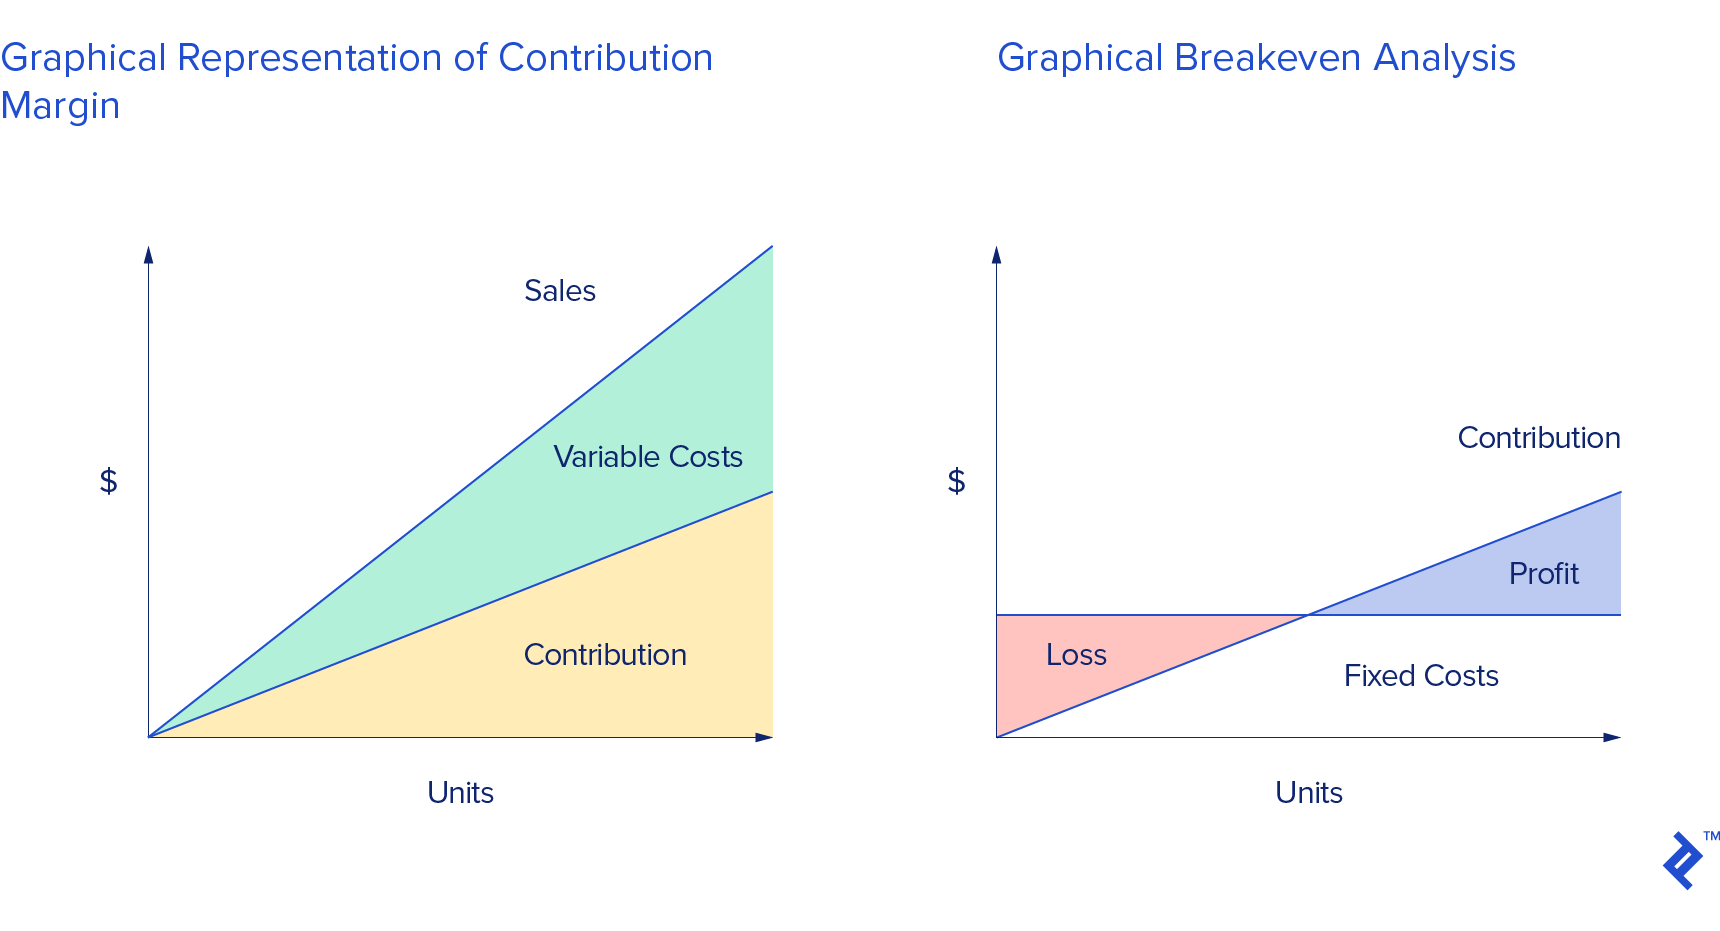 Charts of graphical representation of contribution margin on the left and graphical breakeven analysis on the right